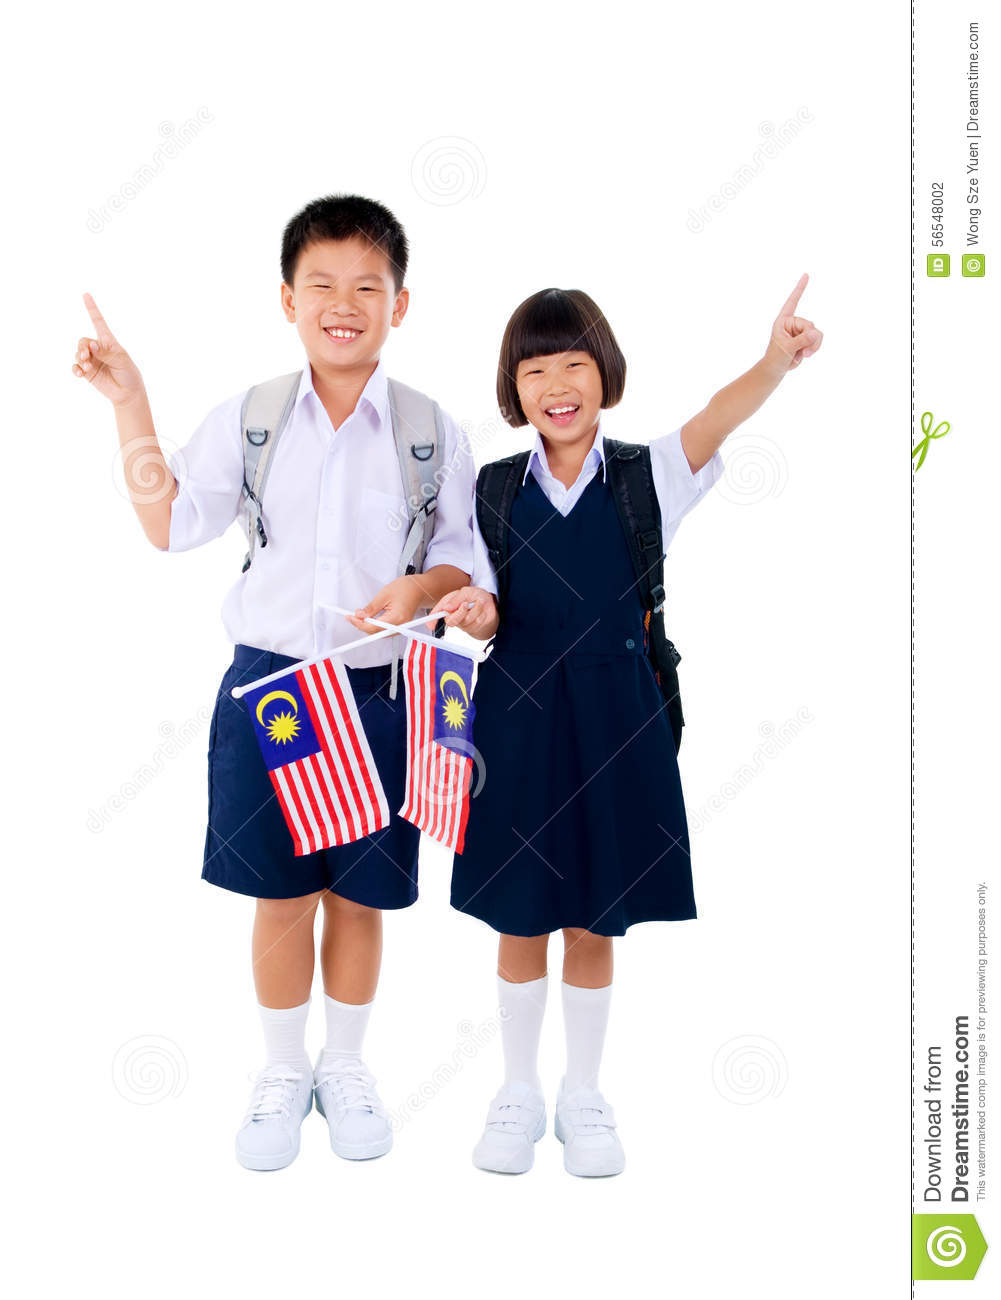 uniform yes or no The heated debate of whether schools should enforce uniforms has been divided by strong supporting evidence on both sides.